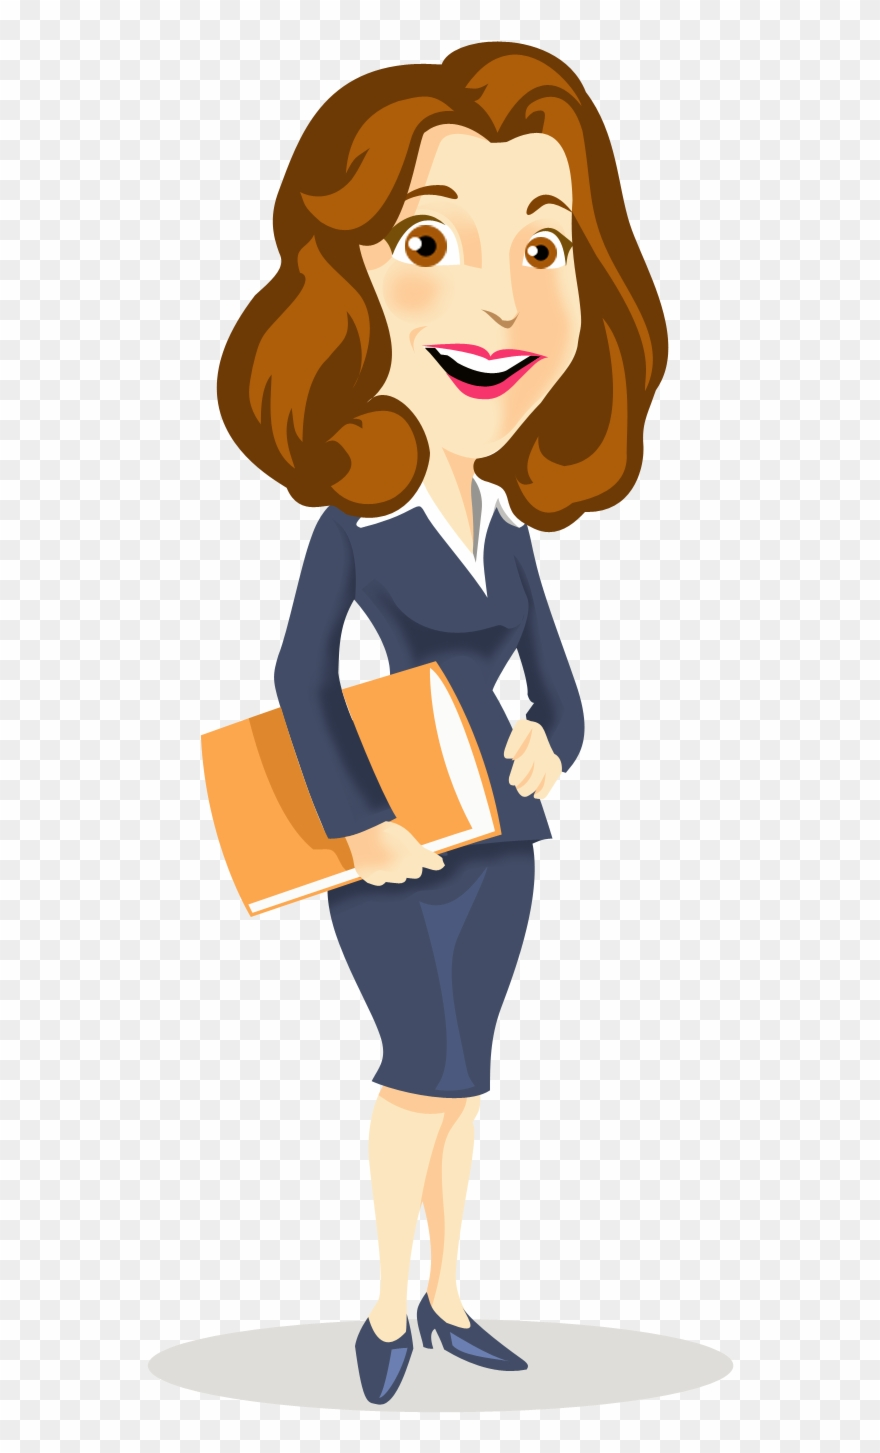 Businessperson Cartoon Clip Art Mood Frame Transprent.